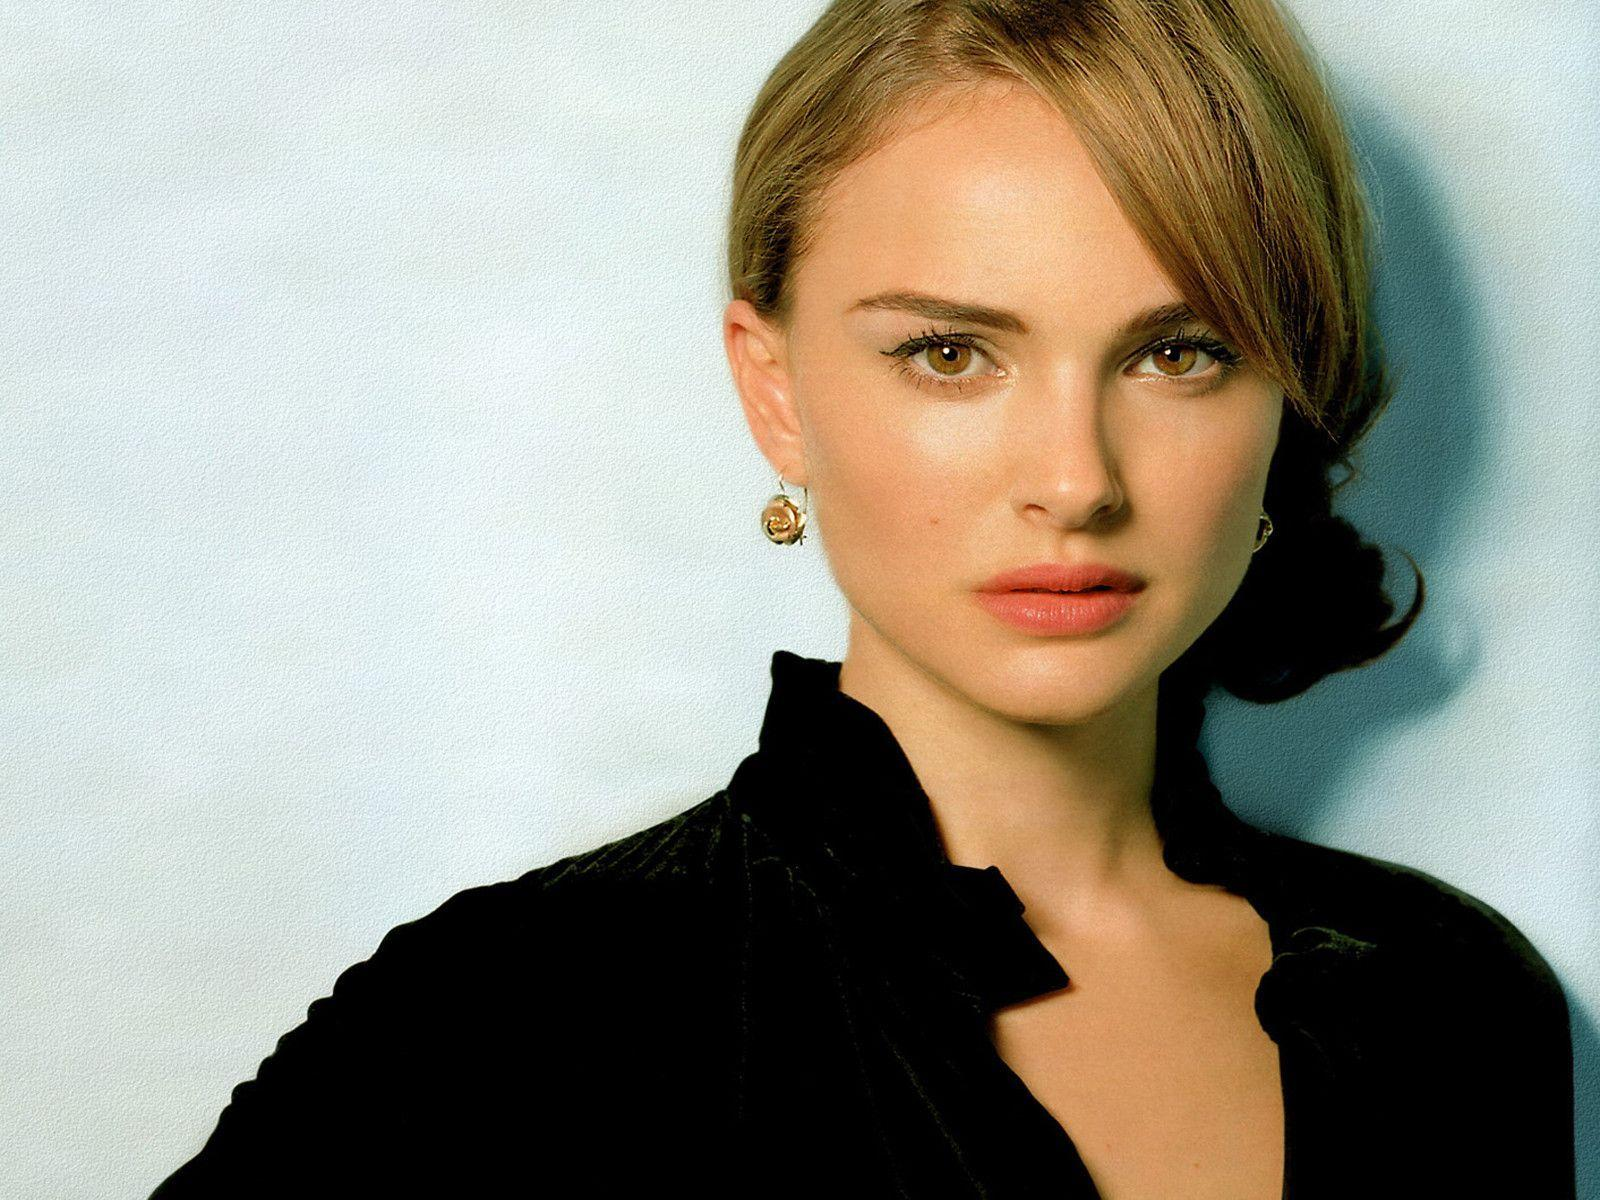 40 HD WALLPAPERS OF NATALIE PORTMAN | Stuff Kit